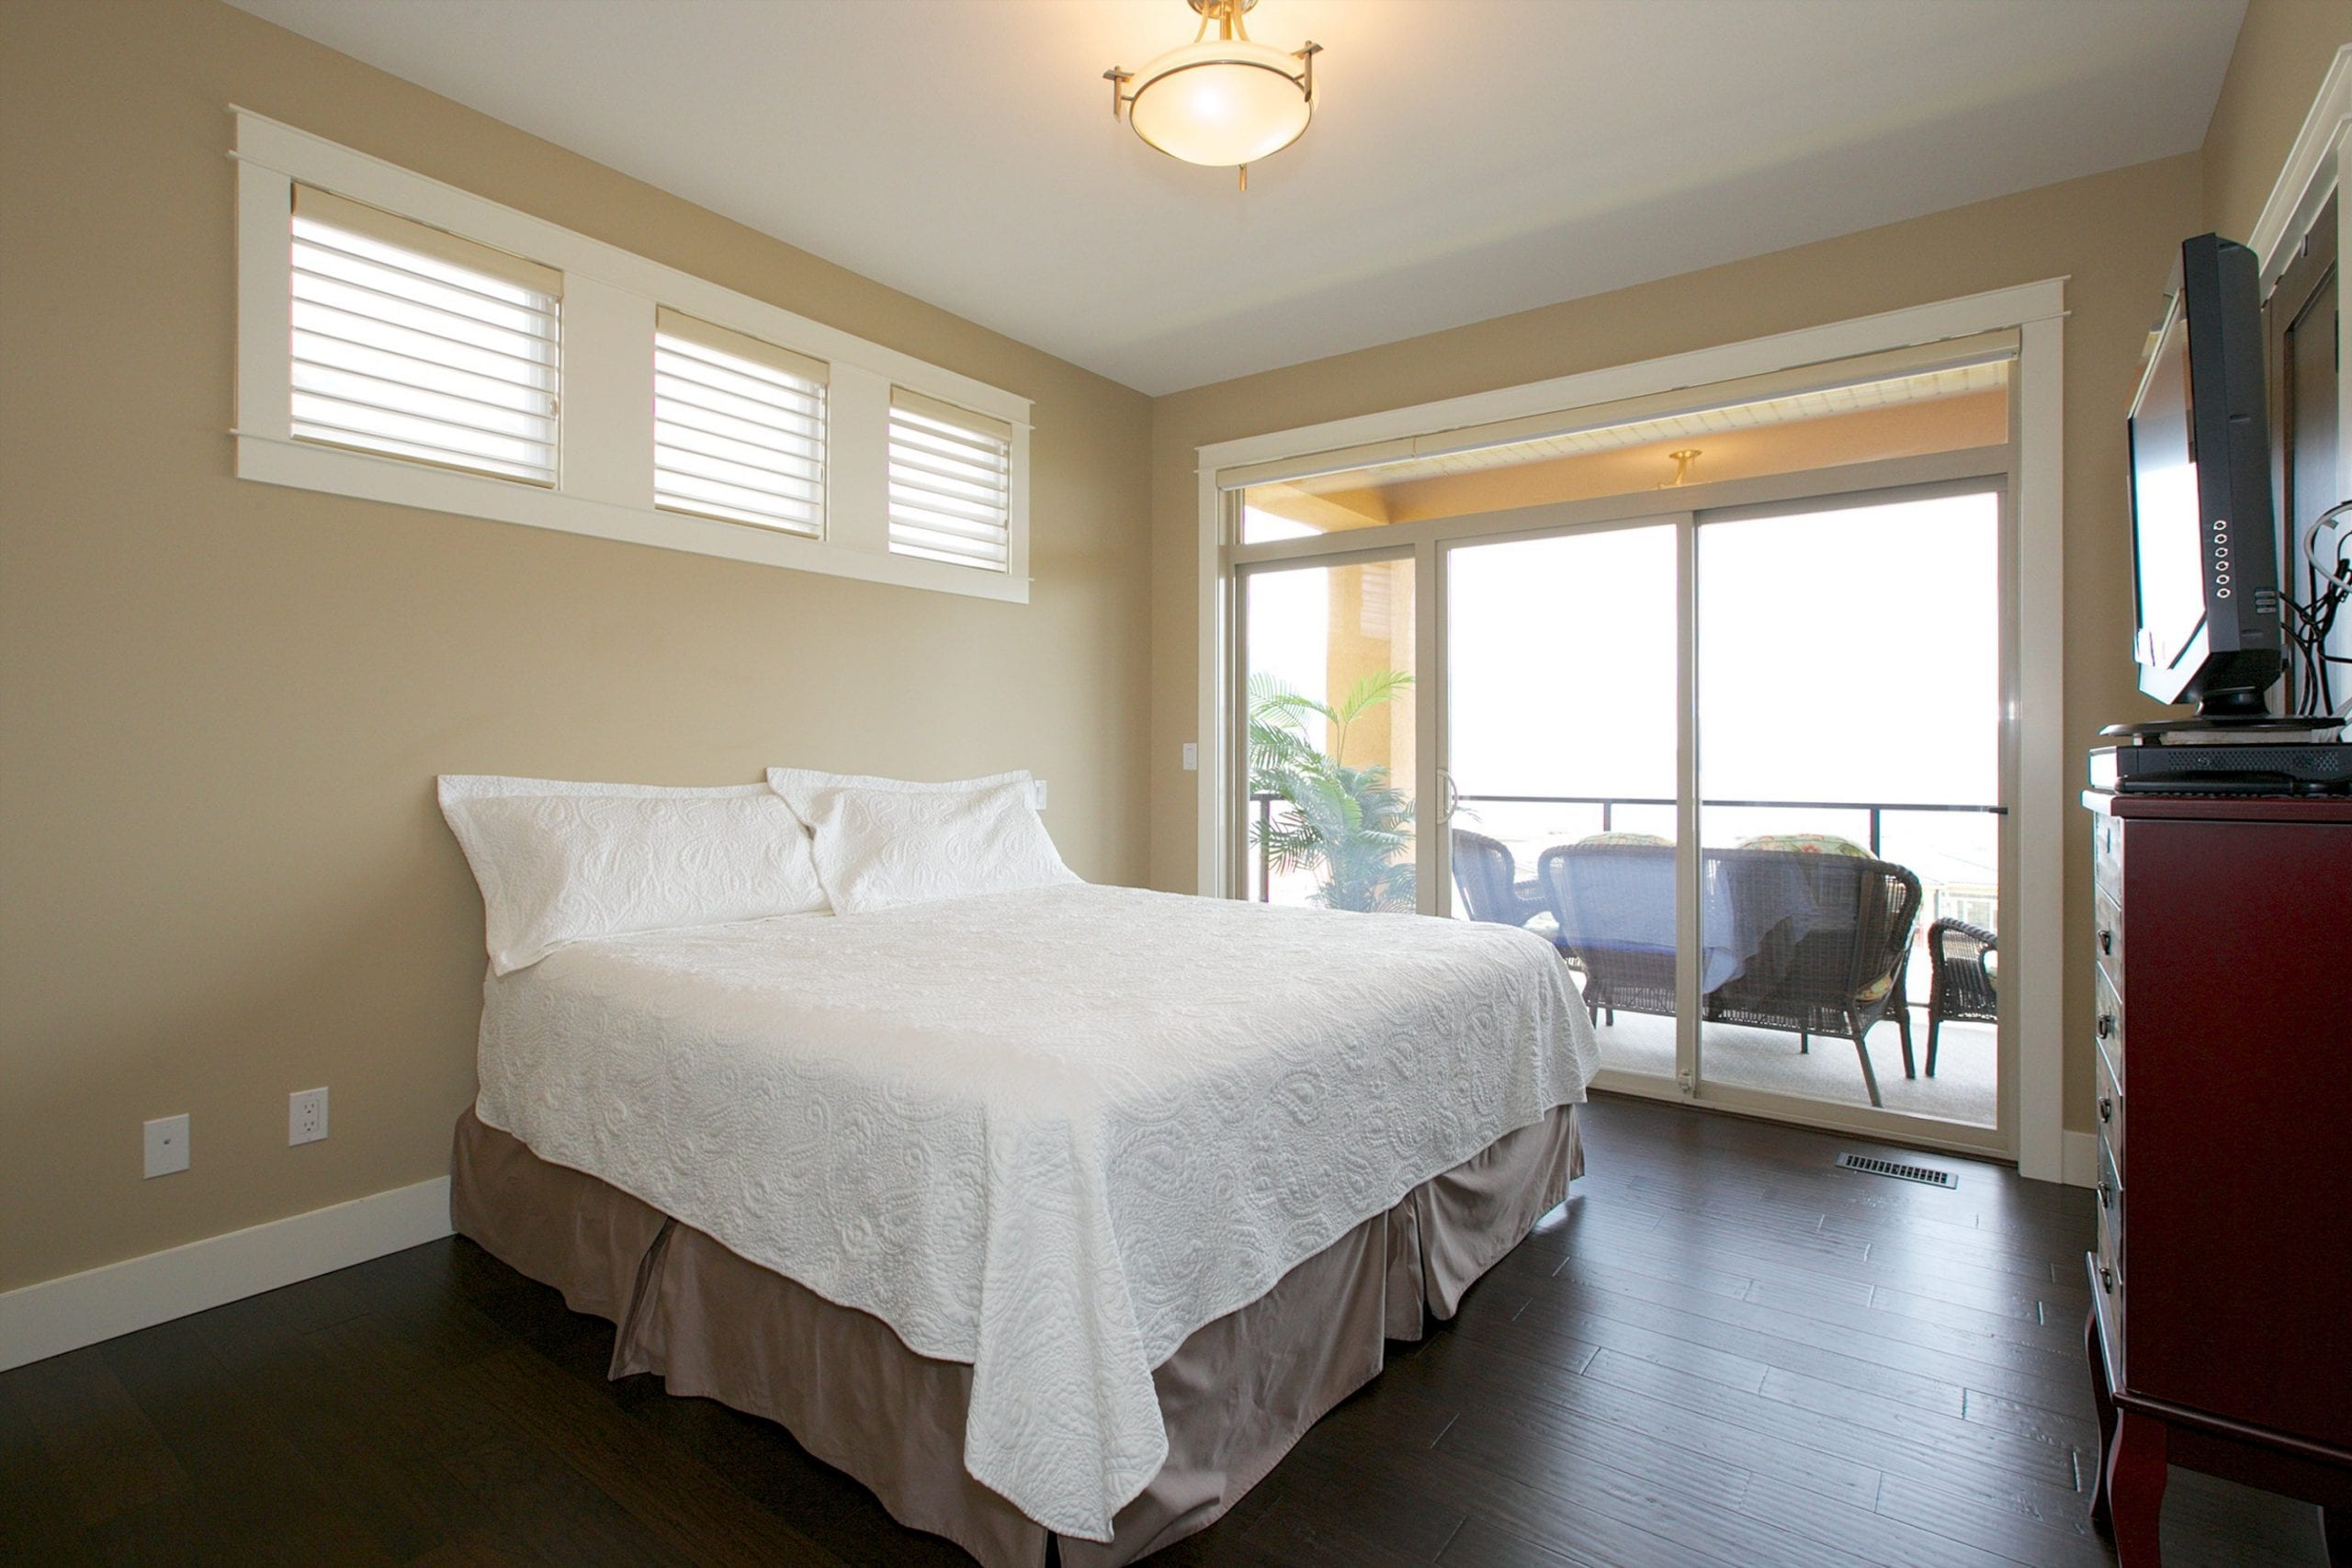 interior shot of west harbour home master bedroom with bed facing a television and four windows bringing in natural light